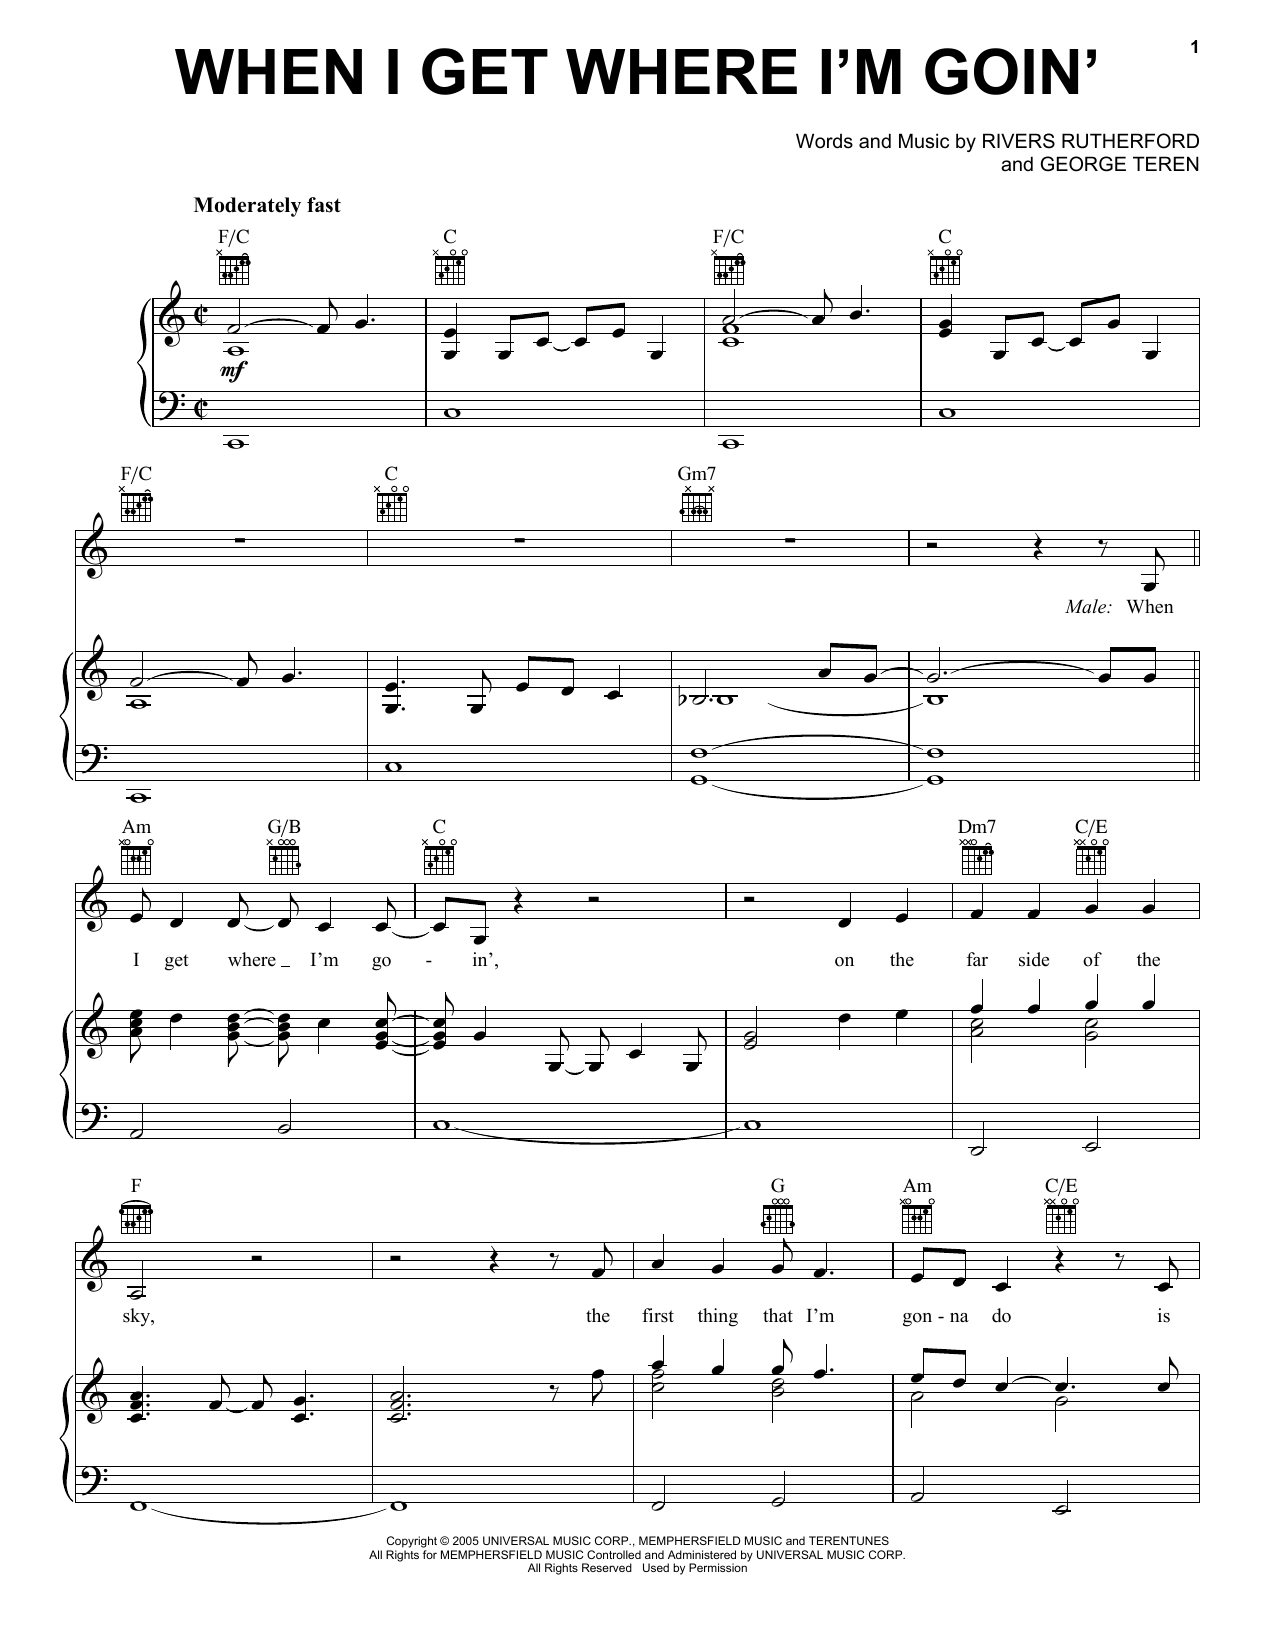 When I Get Where I'm Goin' Sheet Music